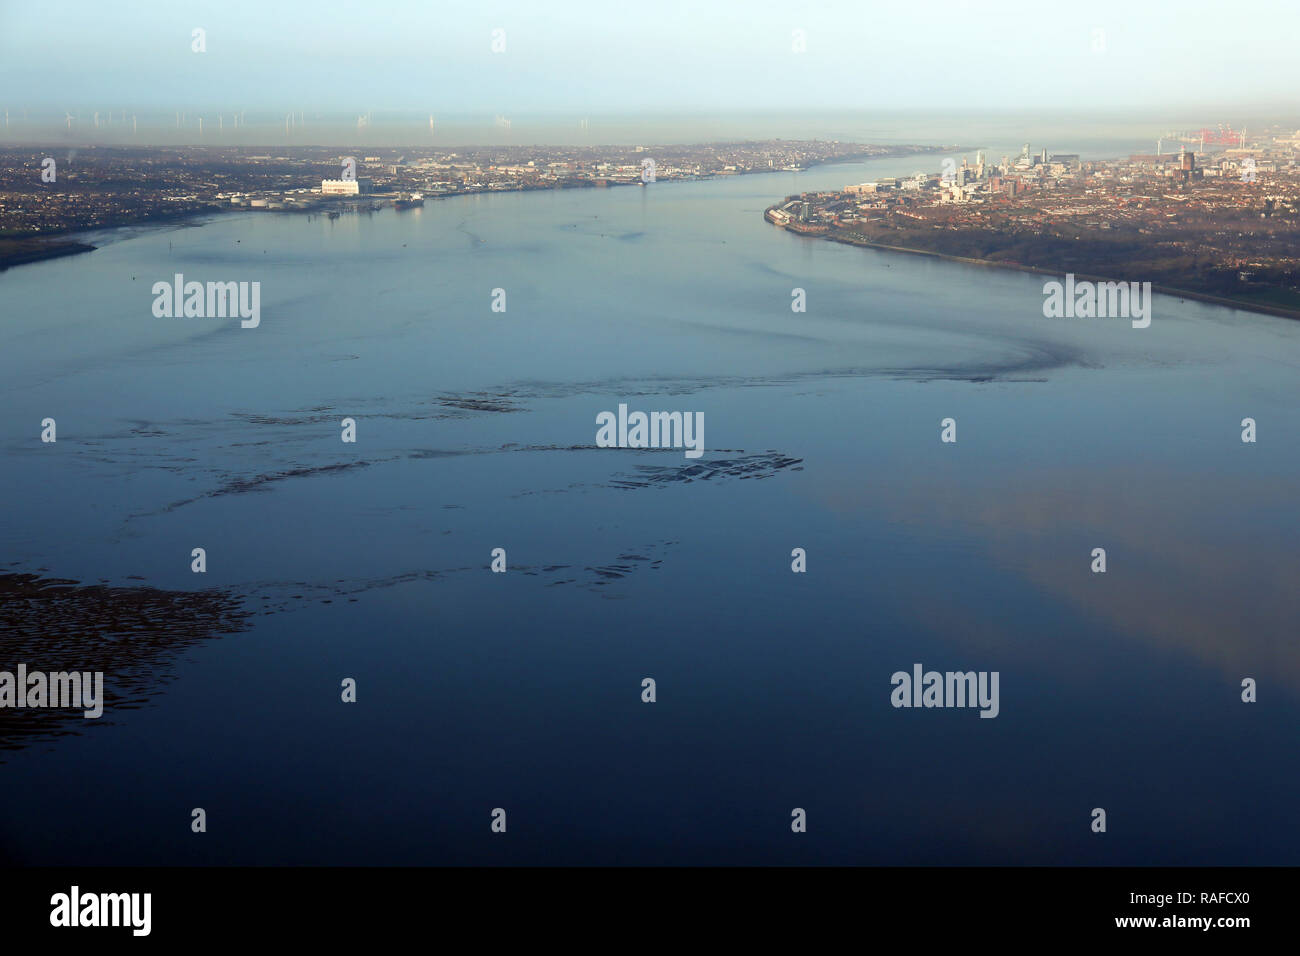 aerial view looking north over the River Mersey Estuary towards Liverpool & Birkenhead - Stock Image